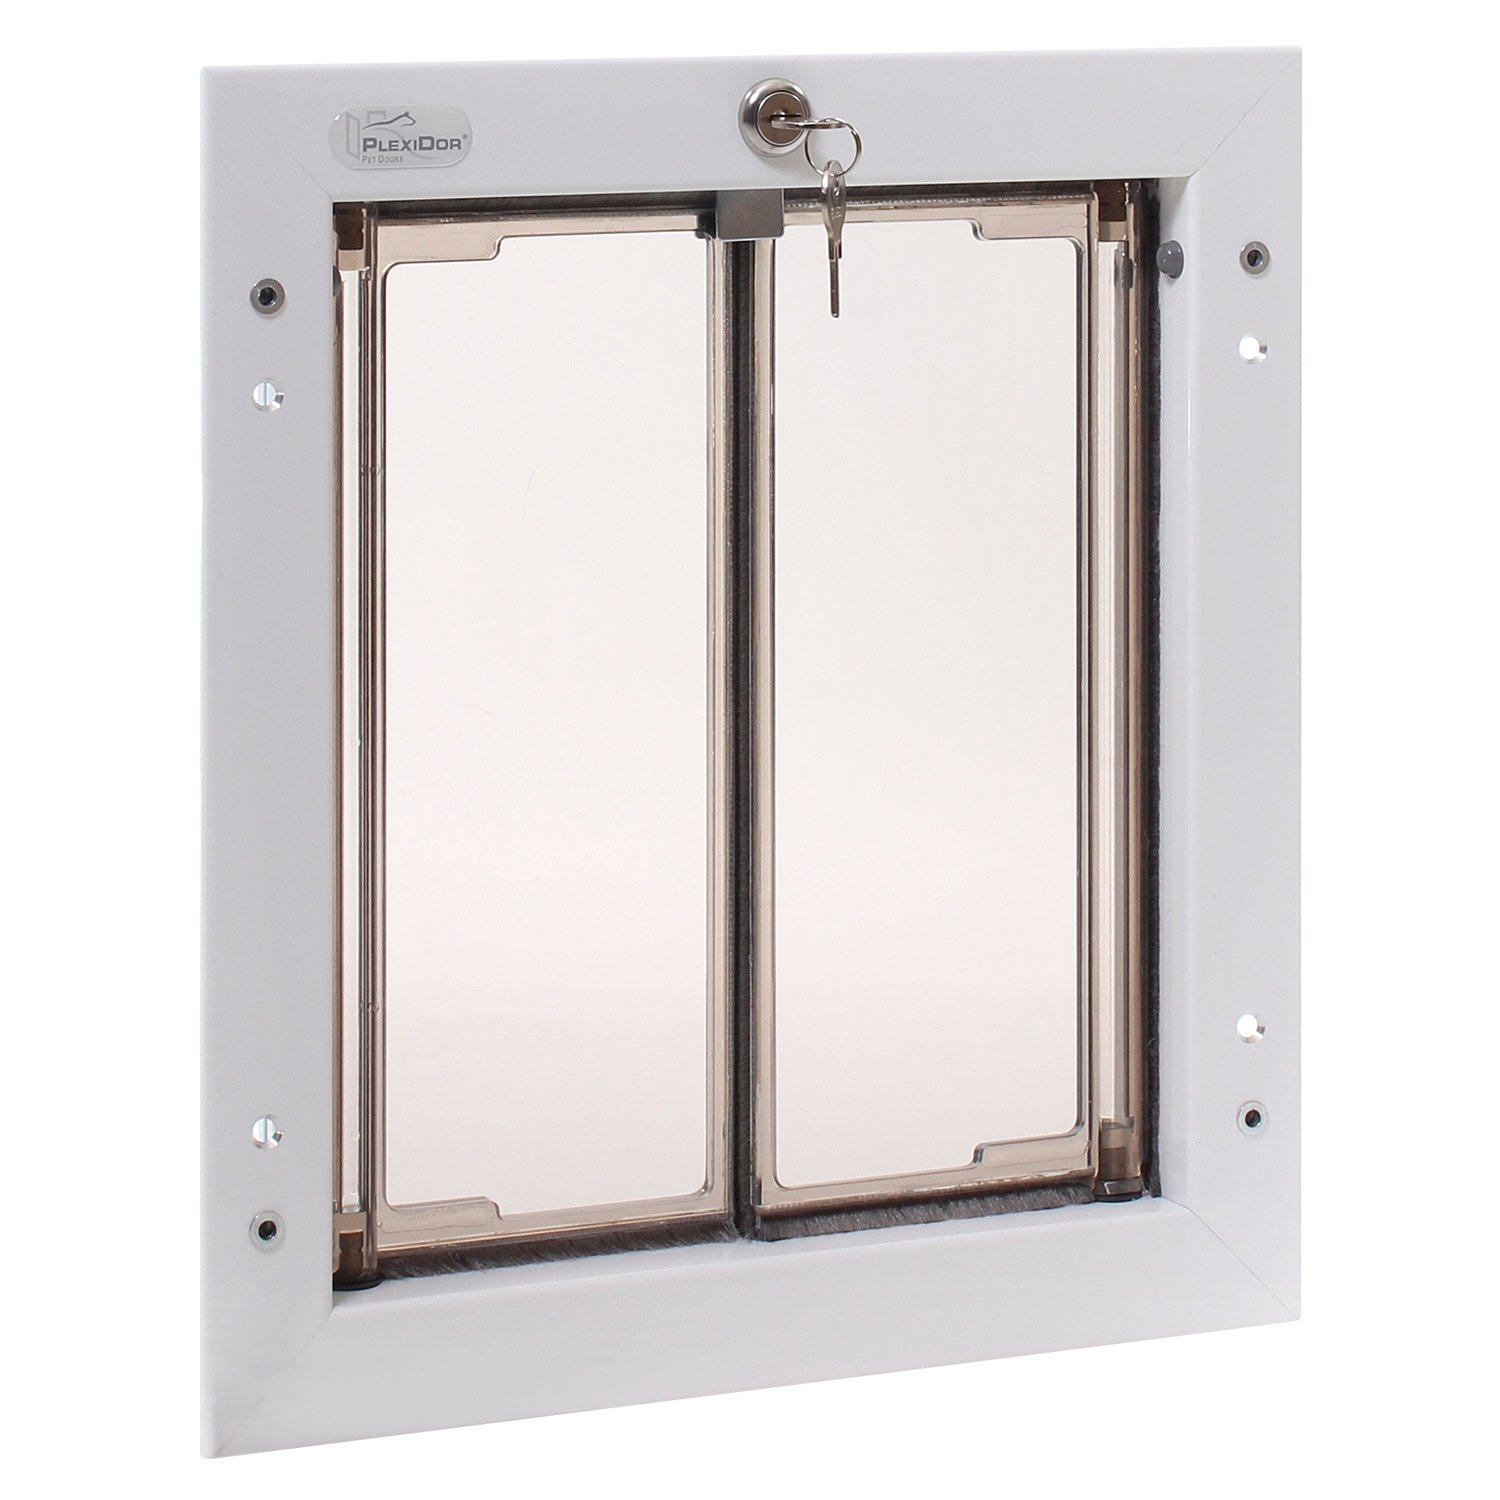 Amazon.com  PlexiDor Performance Pet Doors Medium White Wall Mount  Plexidoor Dog Door  Pet Supplies  sc 1 st  Amazon.com & Amazon.com : PlexiDor Performance Pet Doors Medium White Wall Mount ...